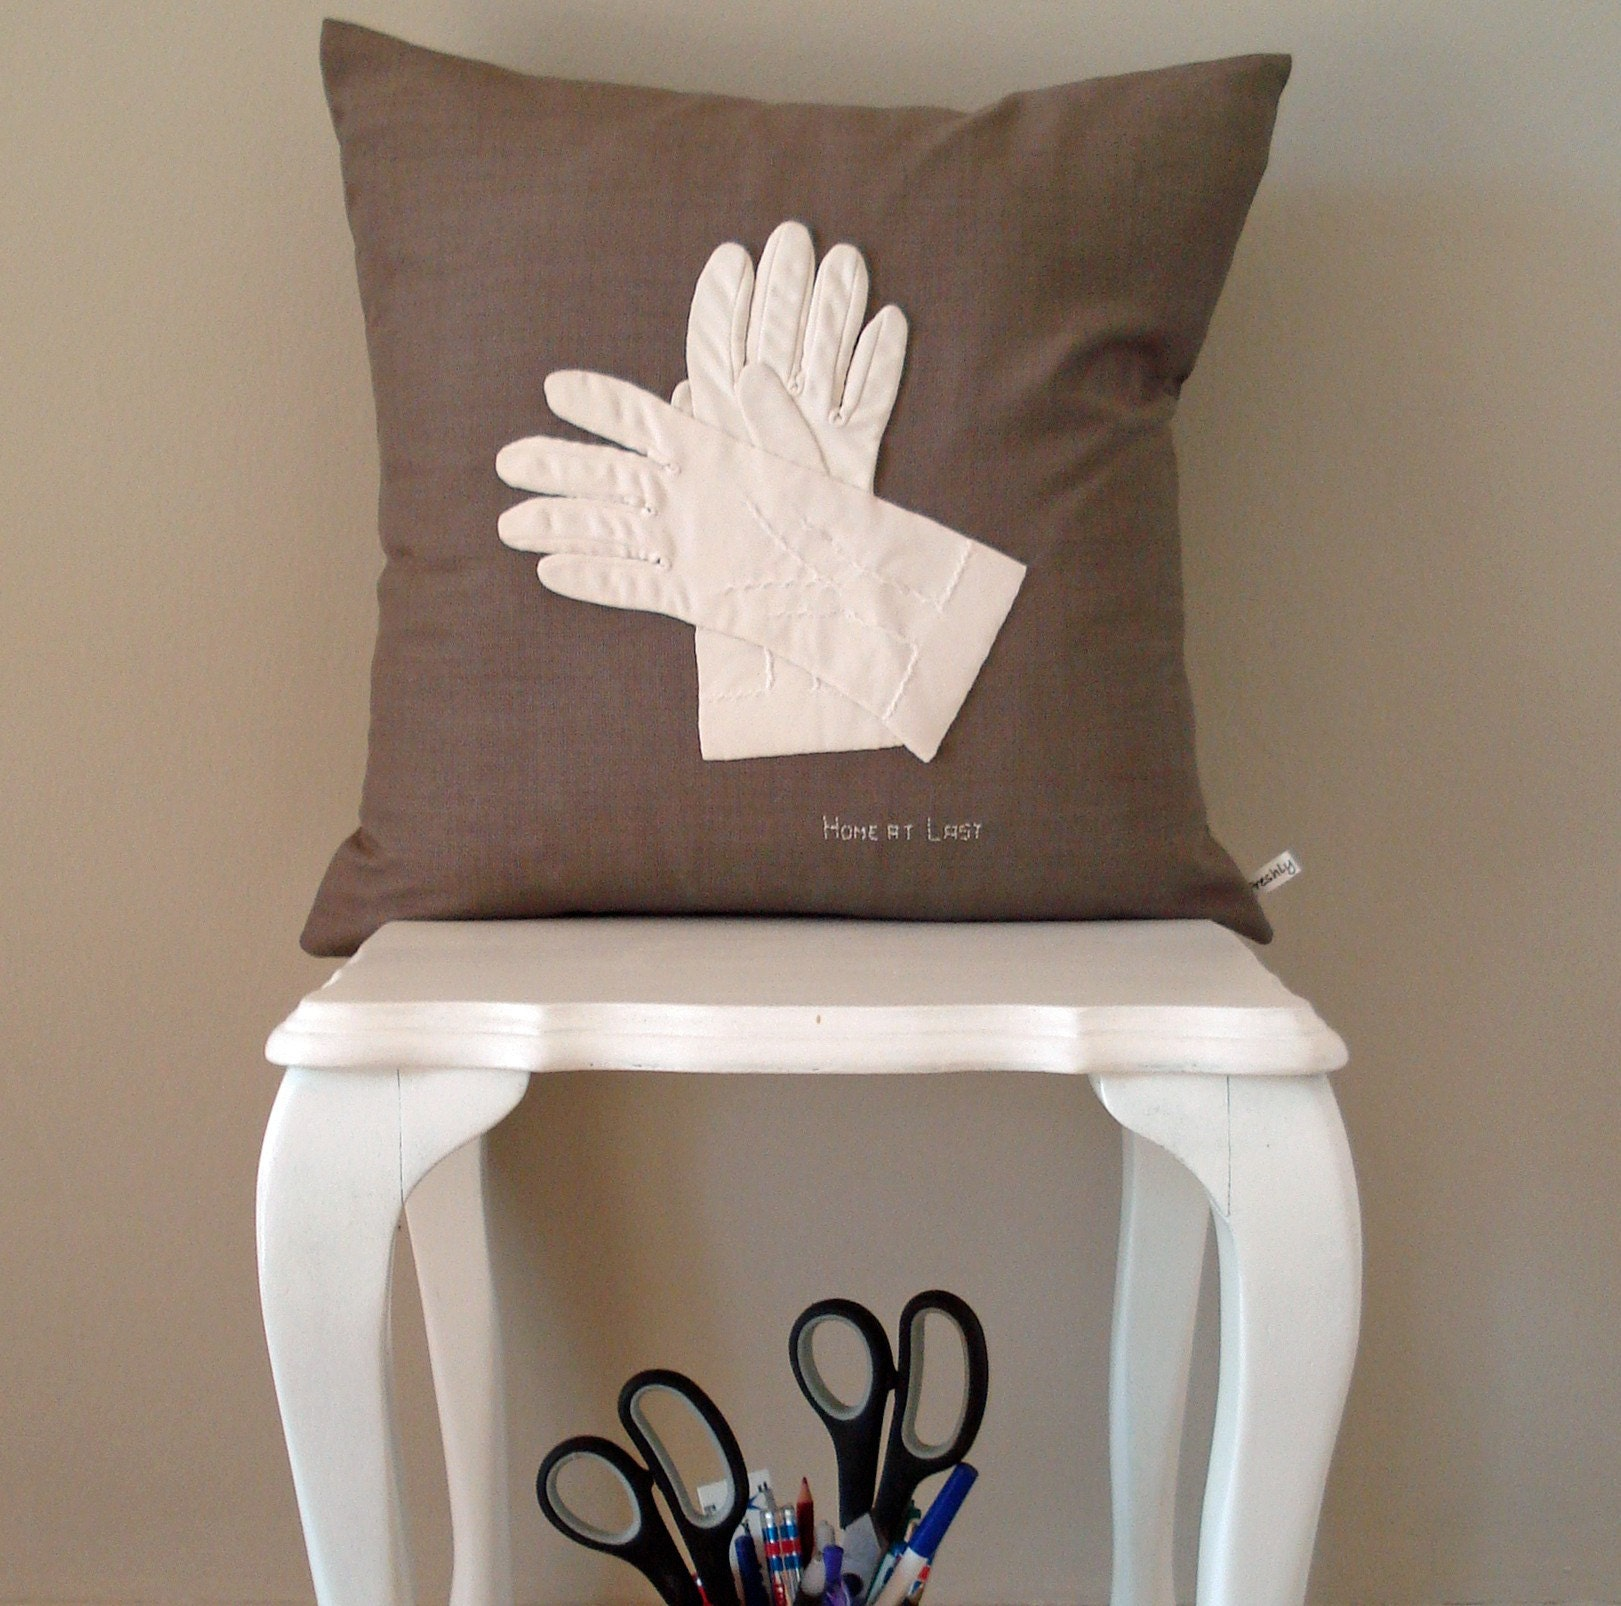 Glove Cushion Cover - Home at Last